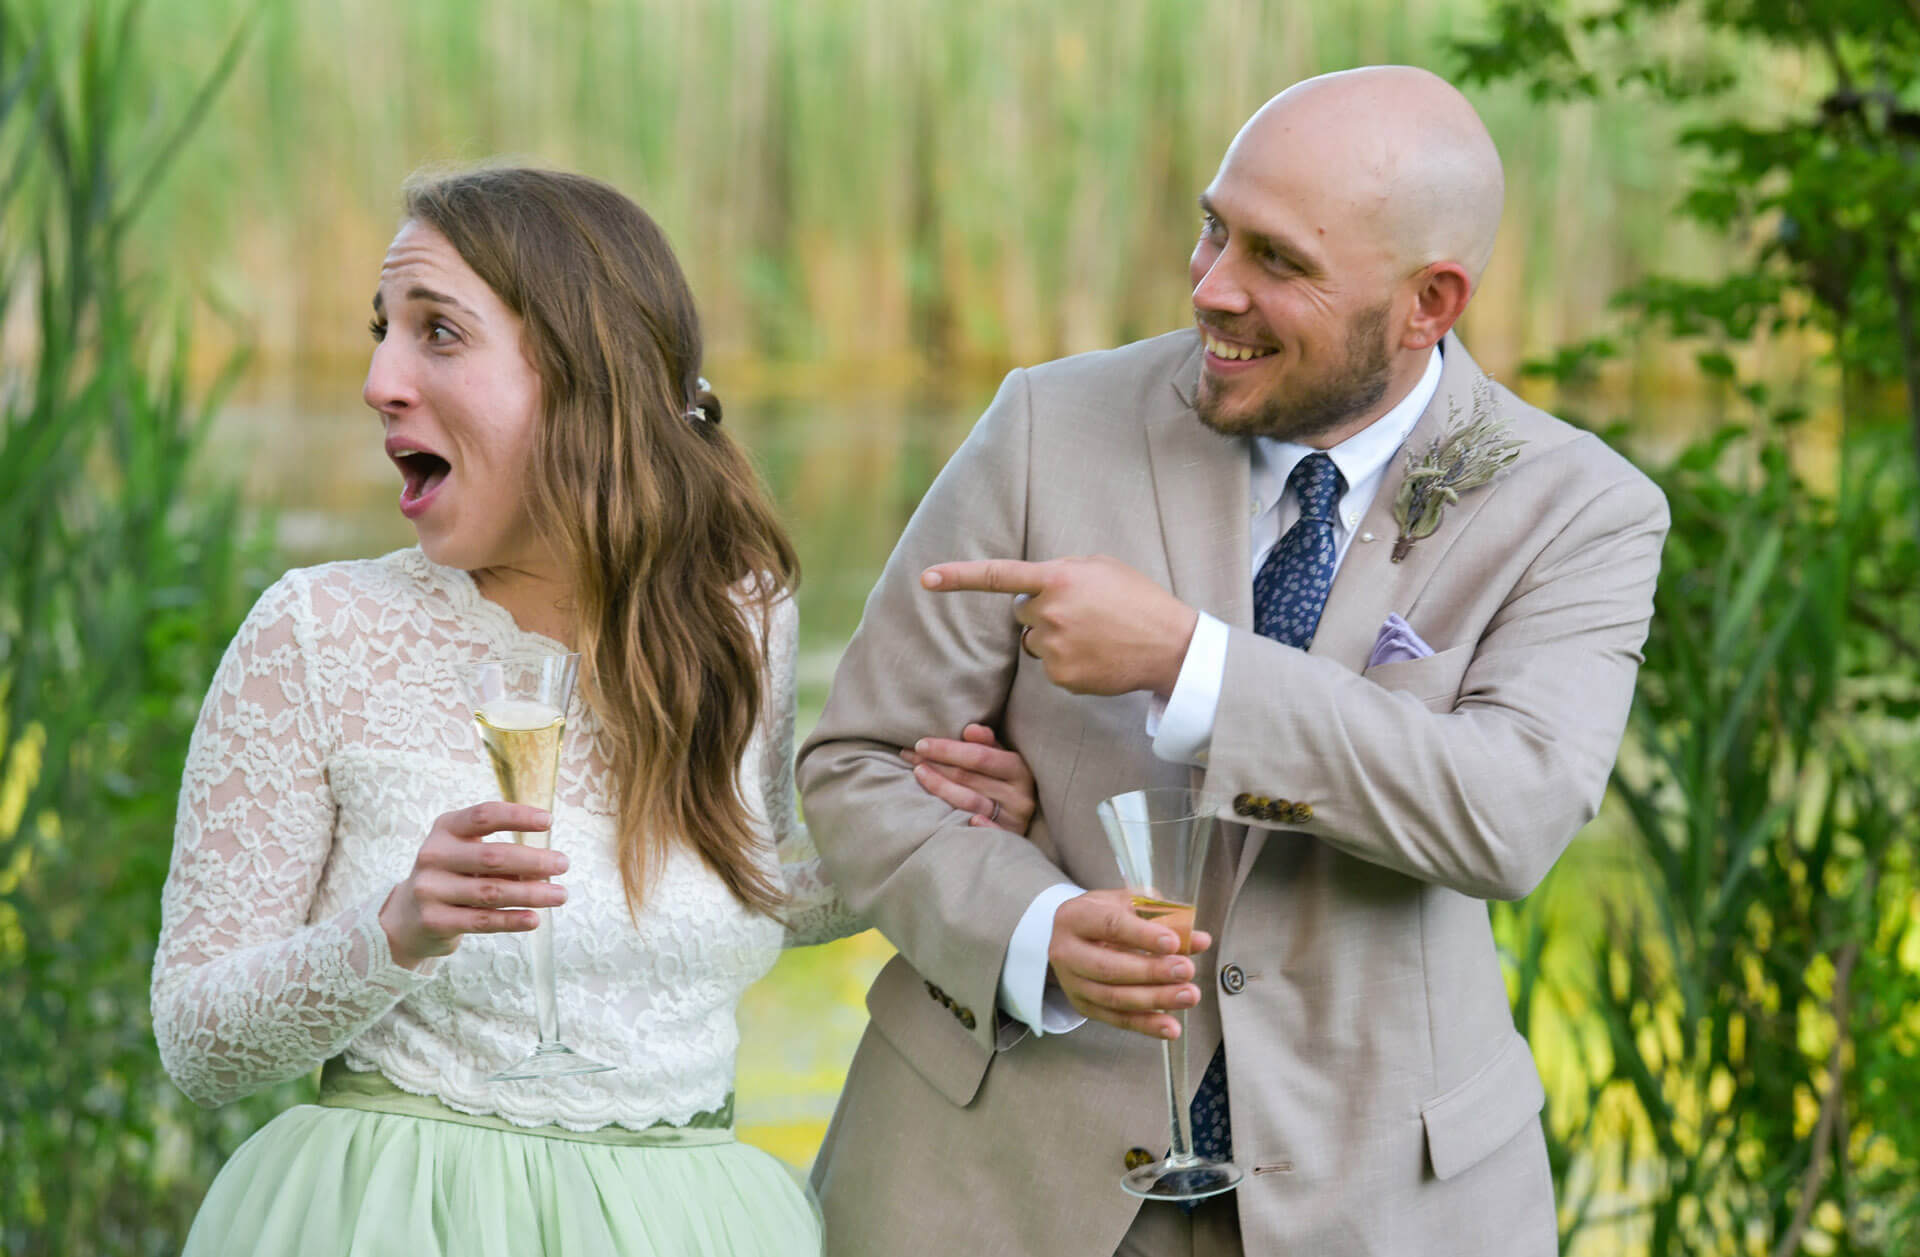 The bride and groom laugh during the toasts during their super small wedding in their Ann Arbor, Michigan backyard during the pandemic.